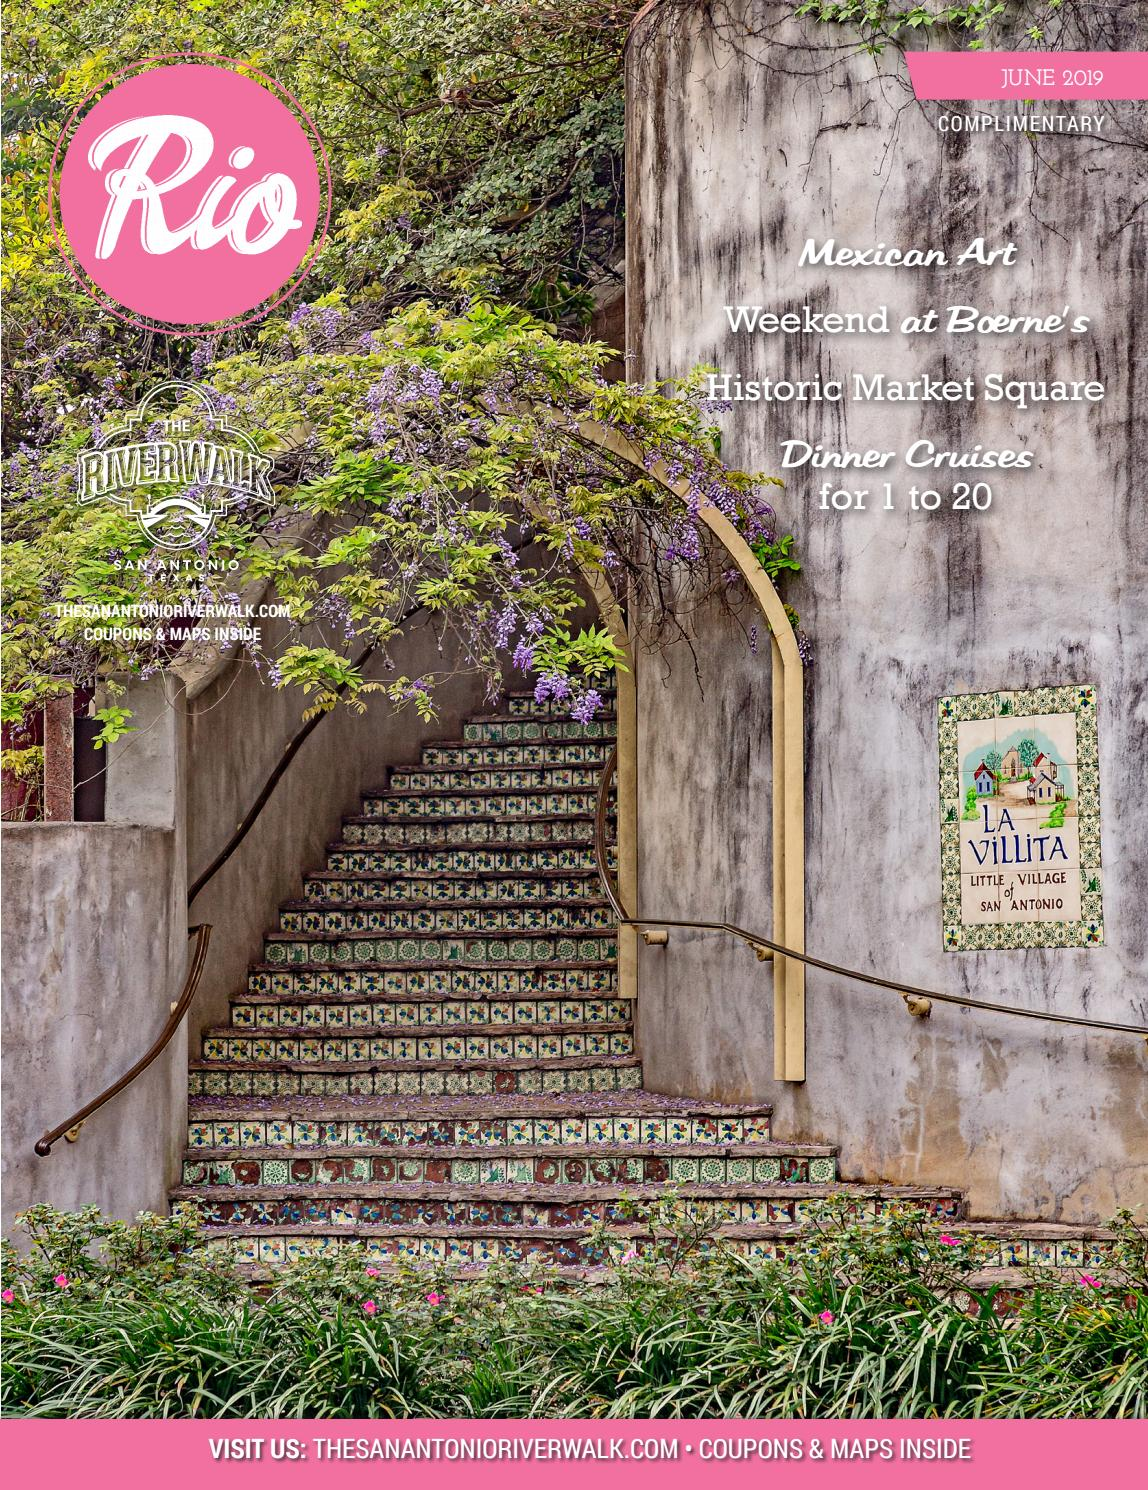 Garten Lounge Flo Rio Magazine June 2019 By Traveling Blender Issuu